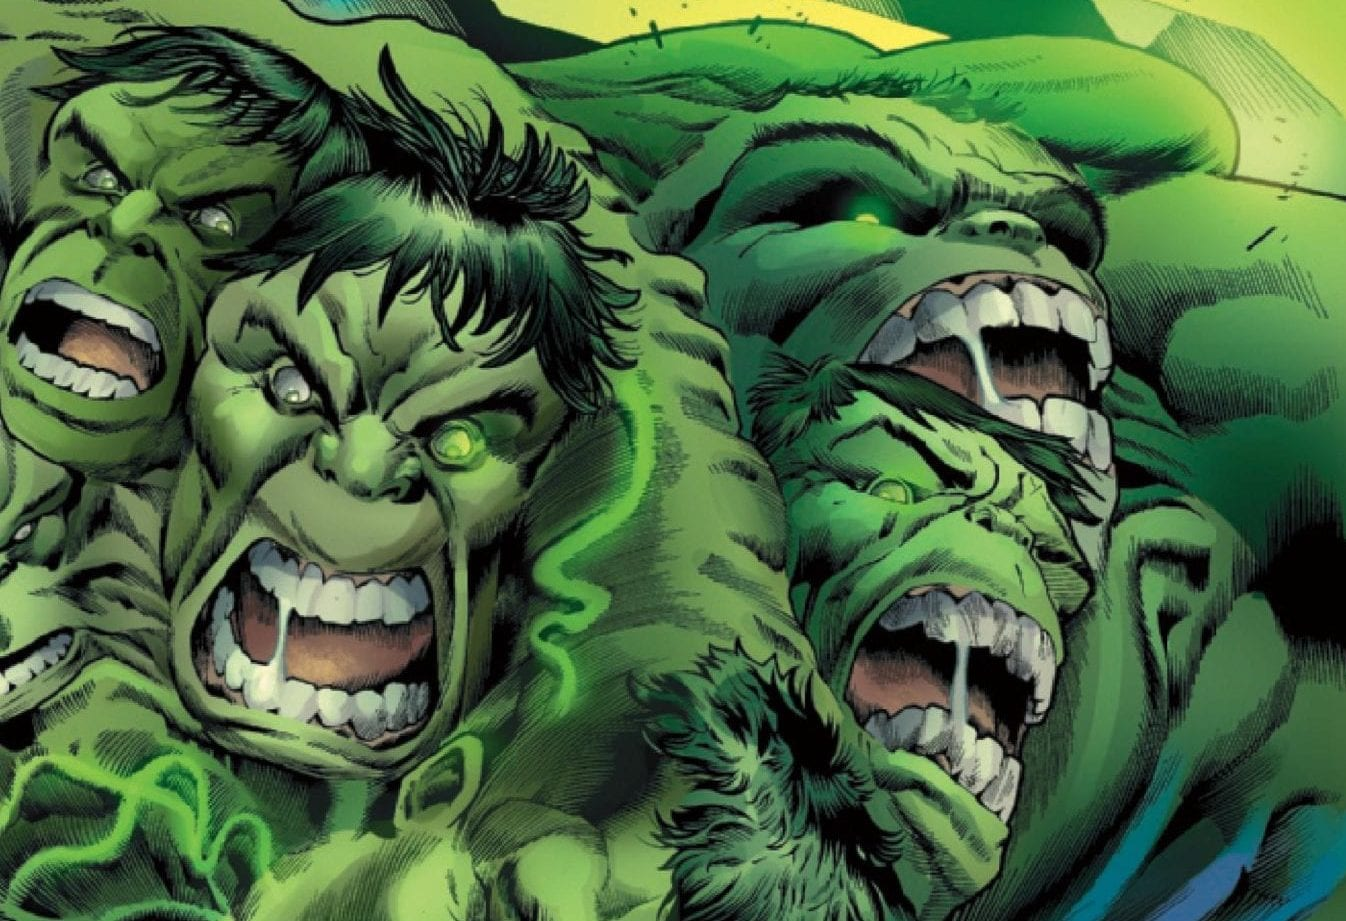 multiple Hulk personalities